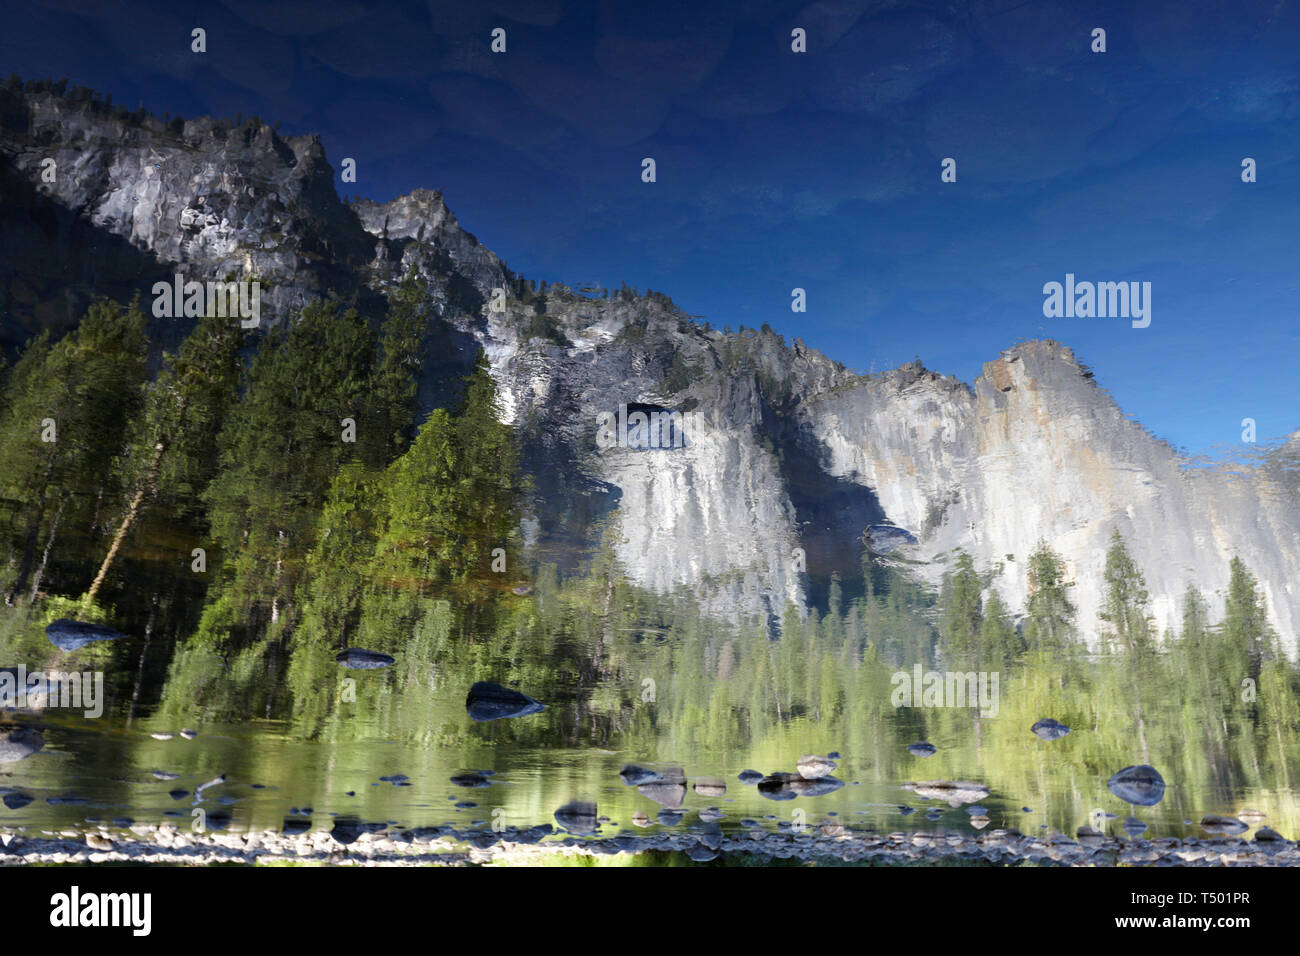 Merced River, Yosemite, California, America. Stock Photo